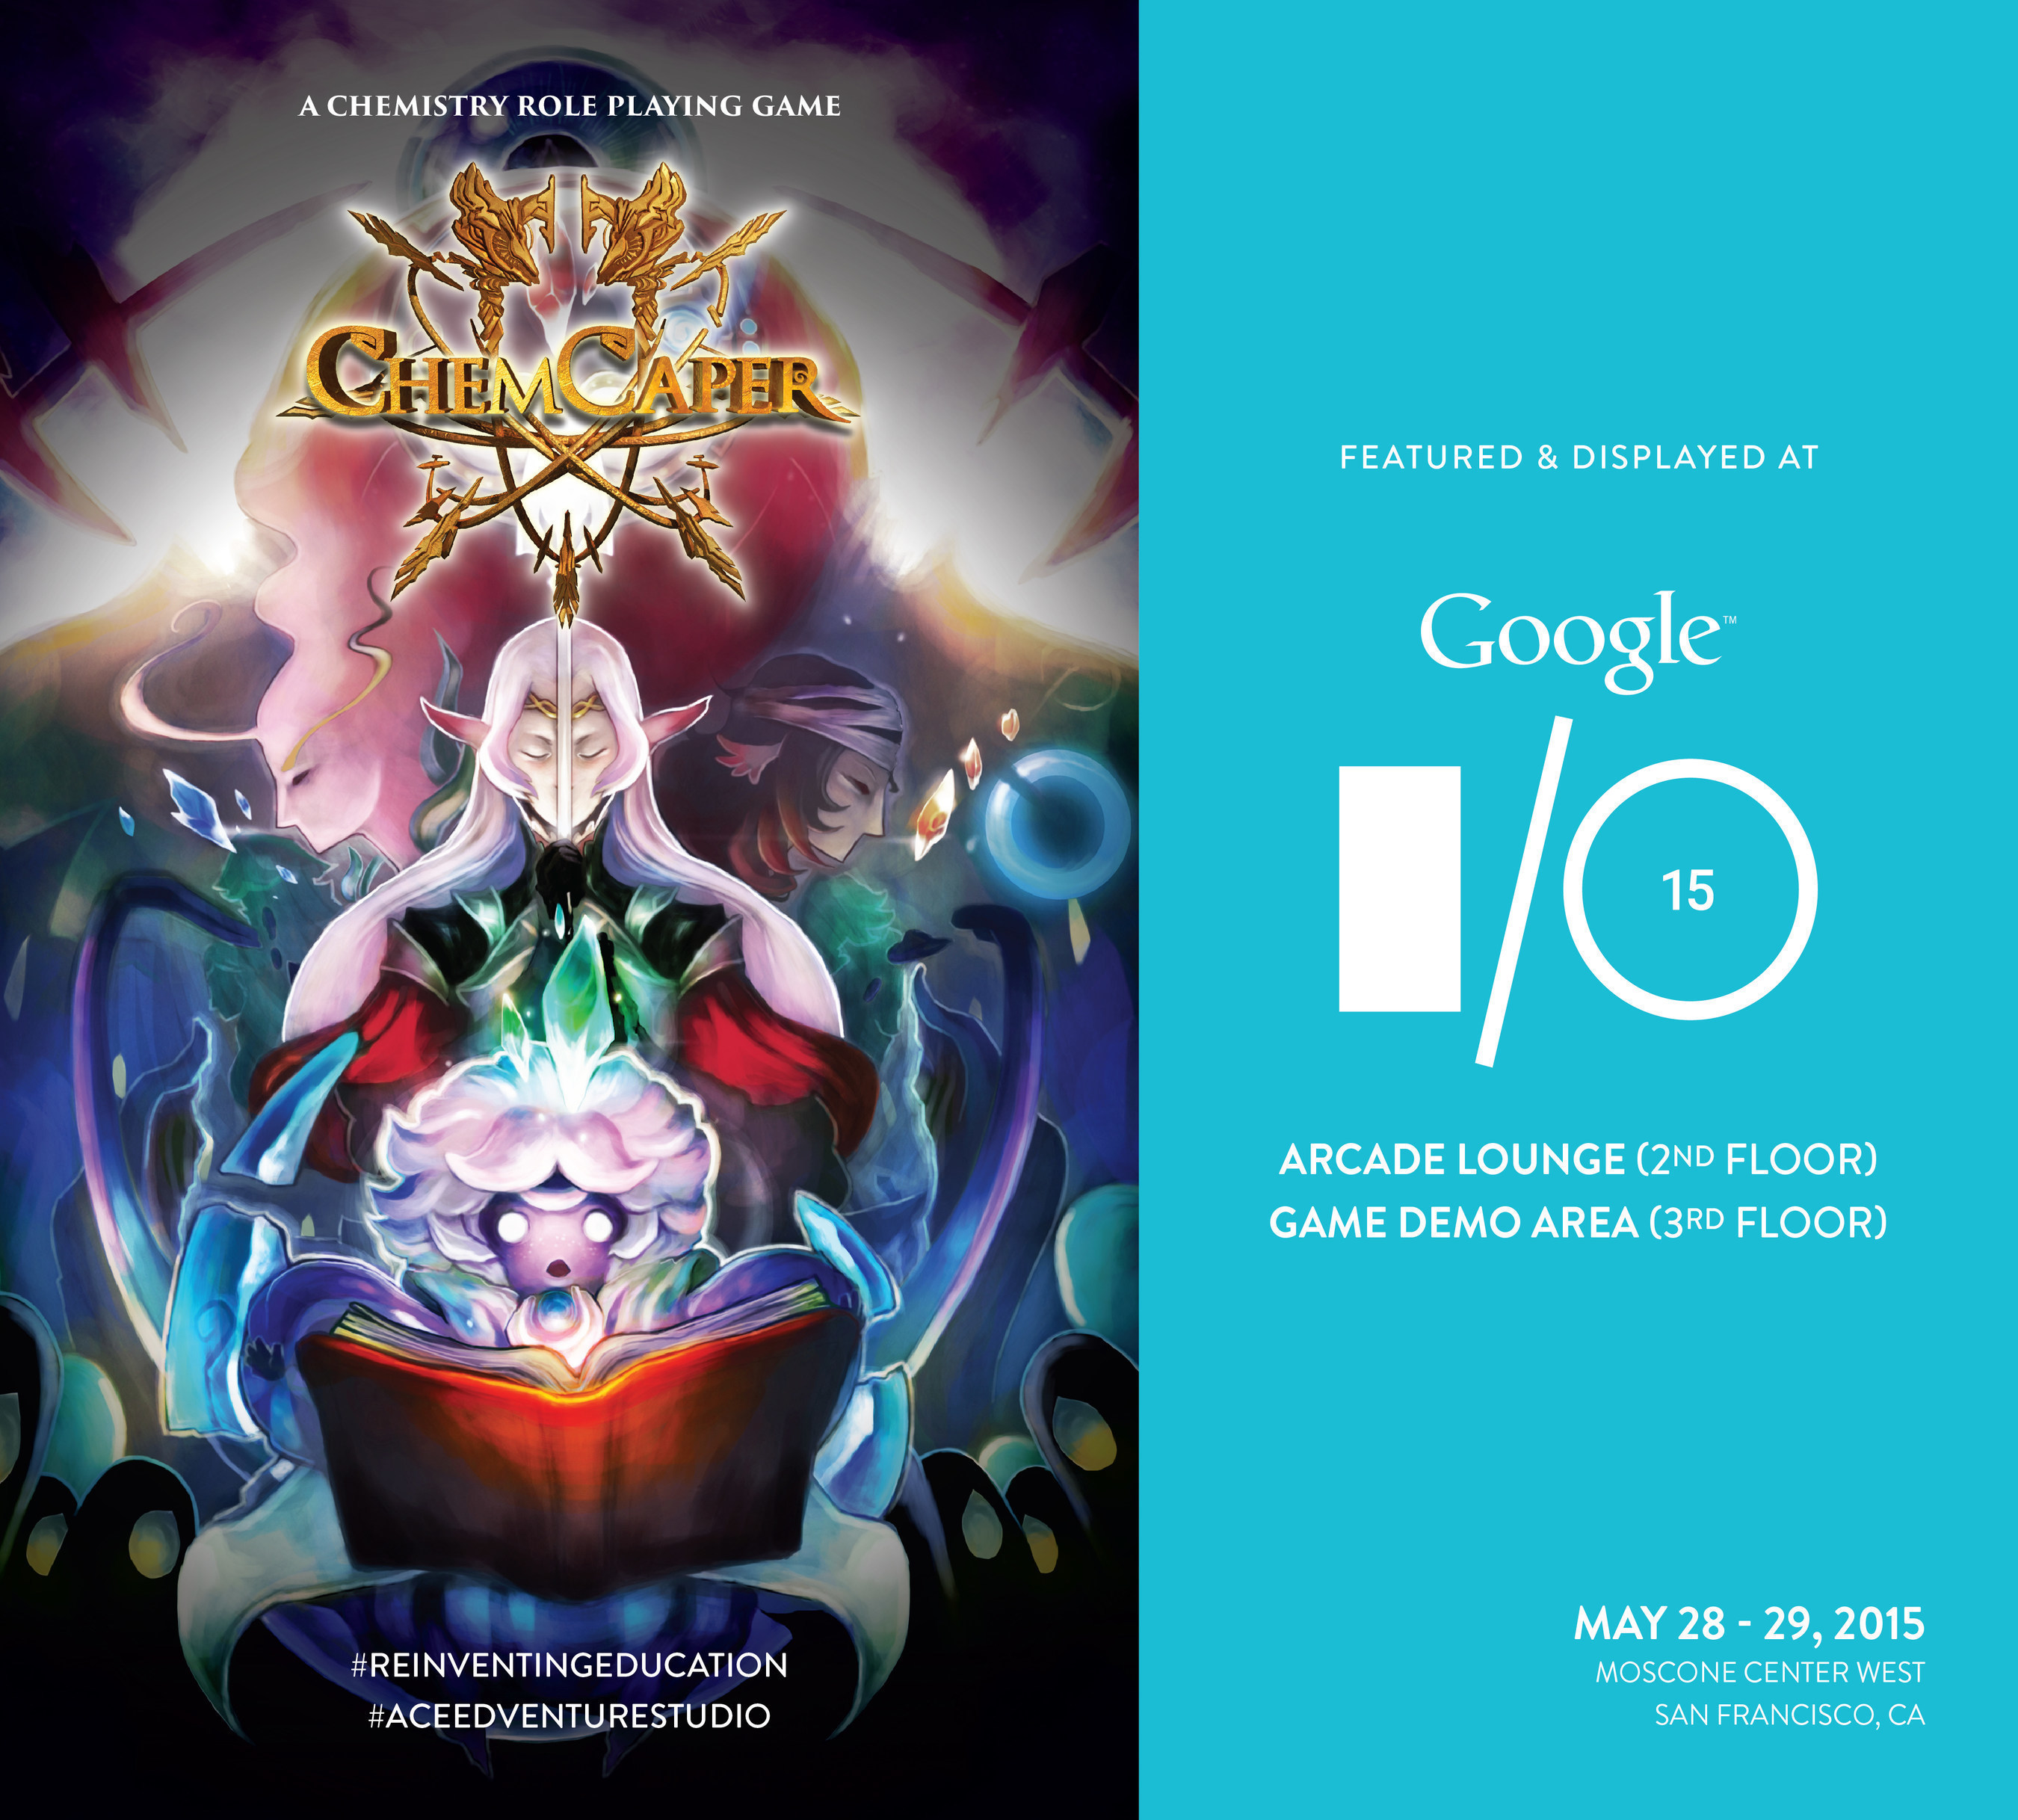 Google I/O 2015 to Feature ChemCaper, the World's First Chemistry Role Playing Game